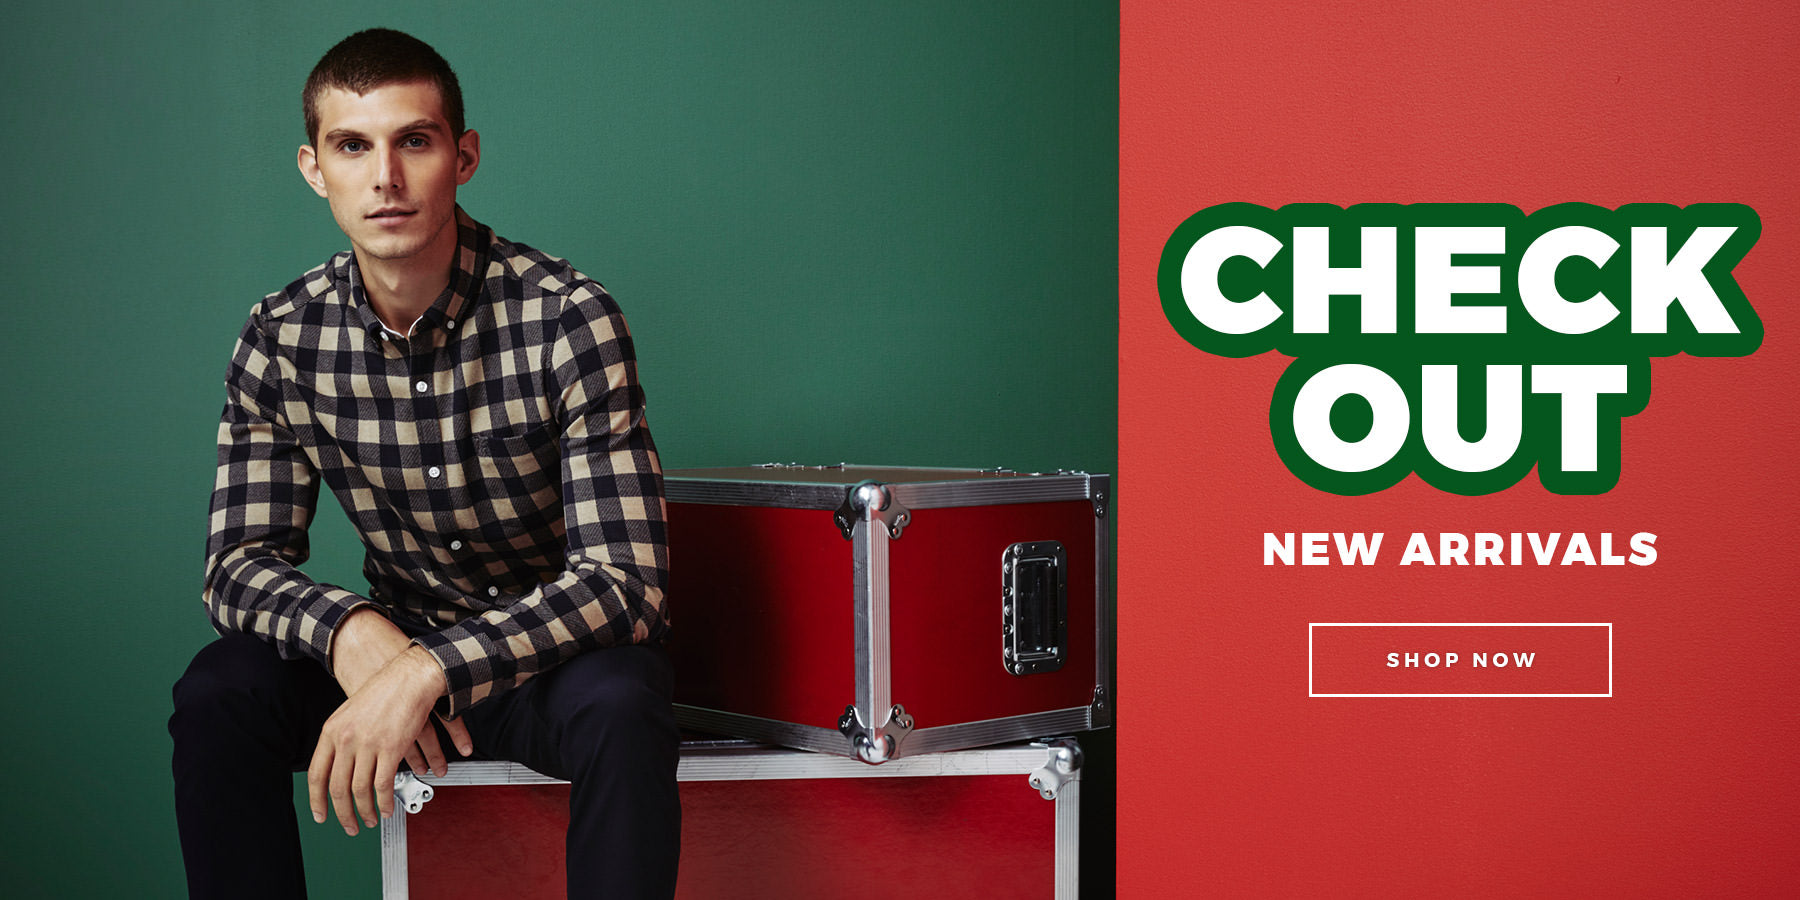 Check Out New arrivals - Shop Now